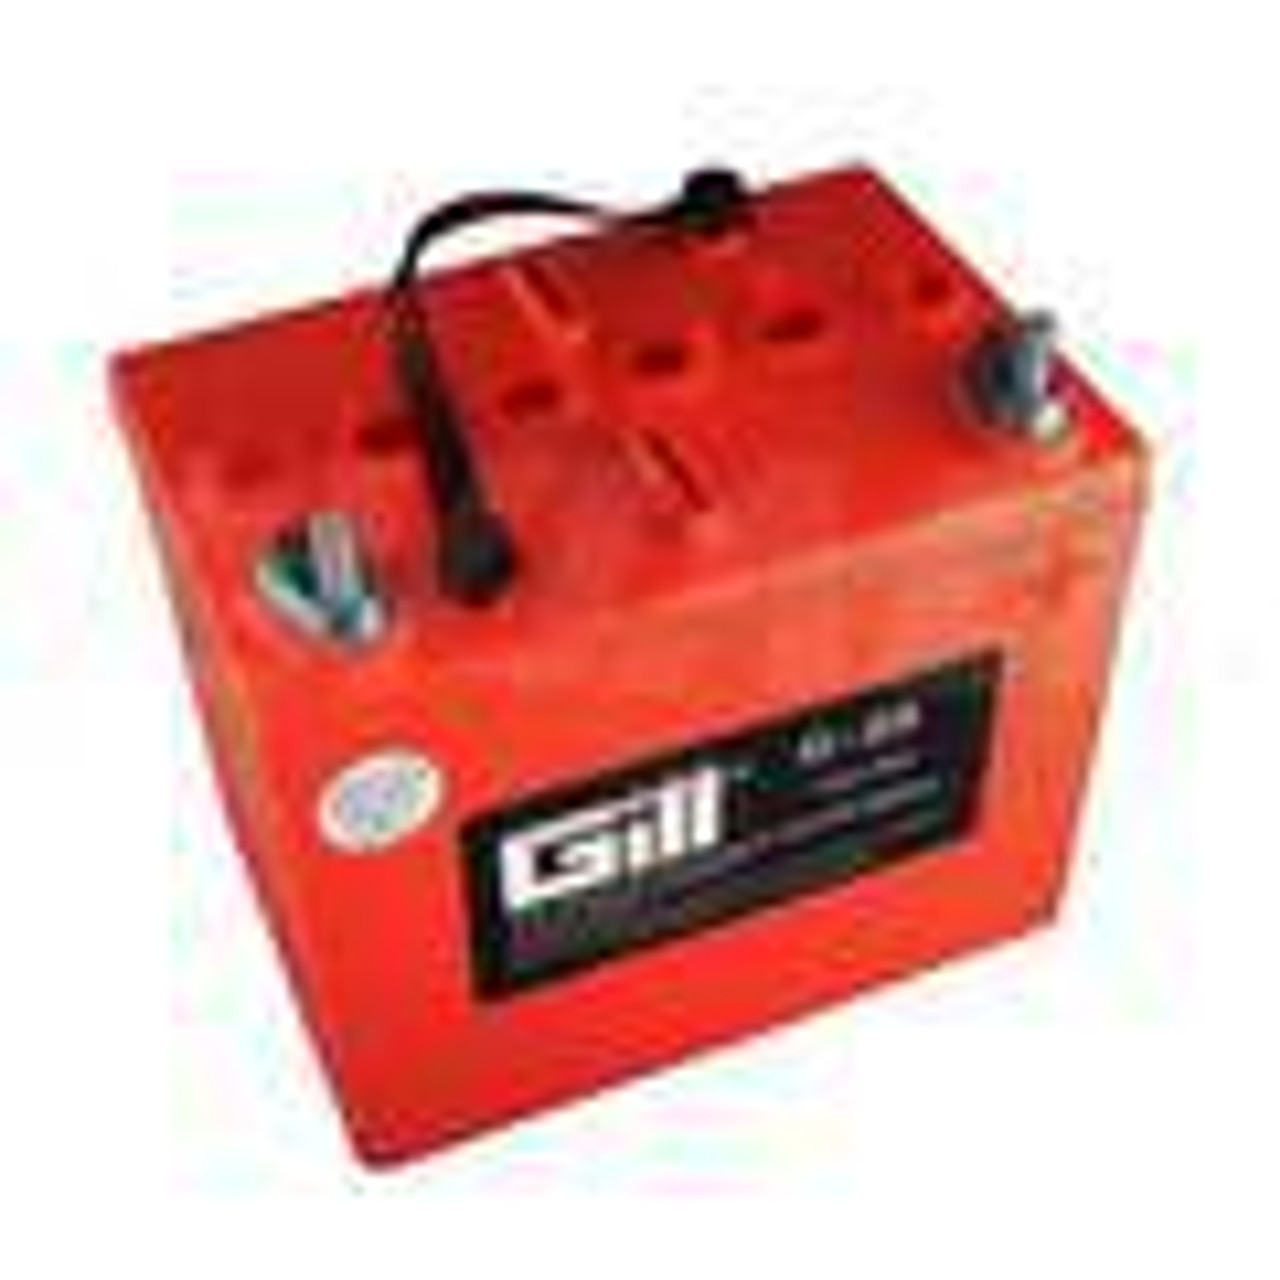 Gill Batteries are the original equipment aircraft battery. They offer the better performing sealed lead acid battery that is fast becoming the choice in a growing list of airframe manufacturers.     Features:  Assembled with electrodes (plates) that have been fully charged and dried Improved case-cover seal Heavy-duty internal post Weight: 21lbs Electrolyte: 2 Qts./1.285 s.g Capacity: 1 hr (C1) 18 Ipp: 30 min (2C) 30 Ipr: 60 sec/0 deg F (CCA) 225